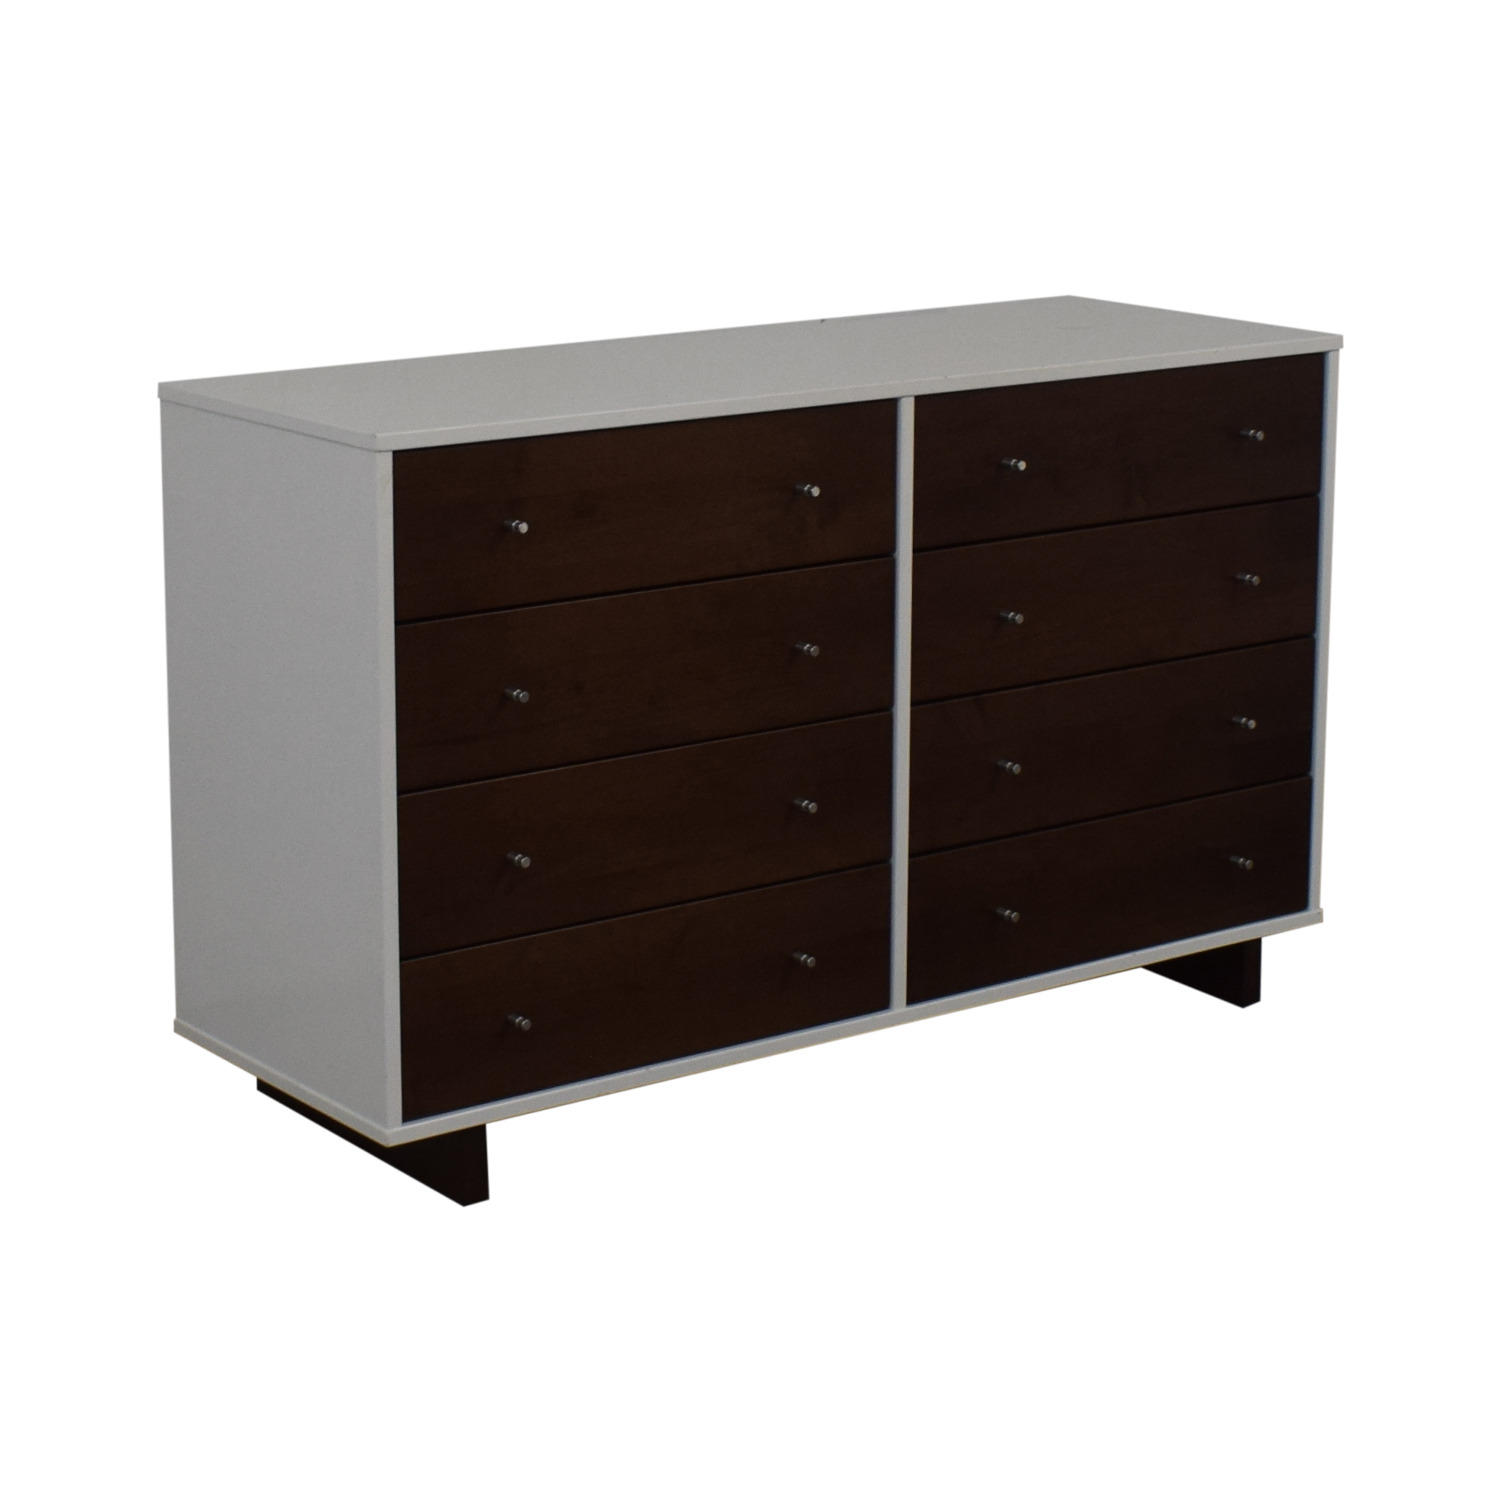 Room & Board Moda Eight-Drawer Dresser sale